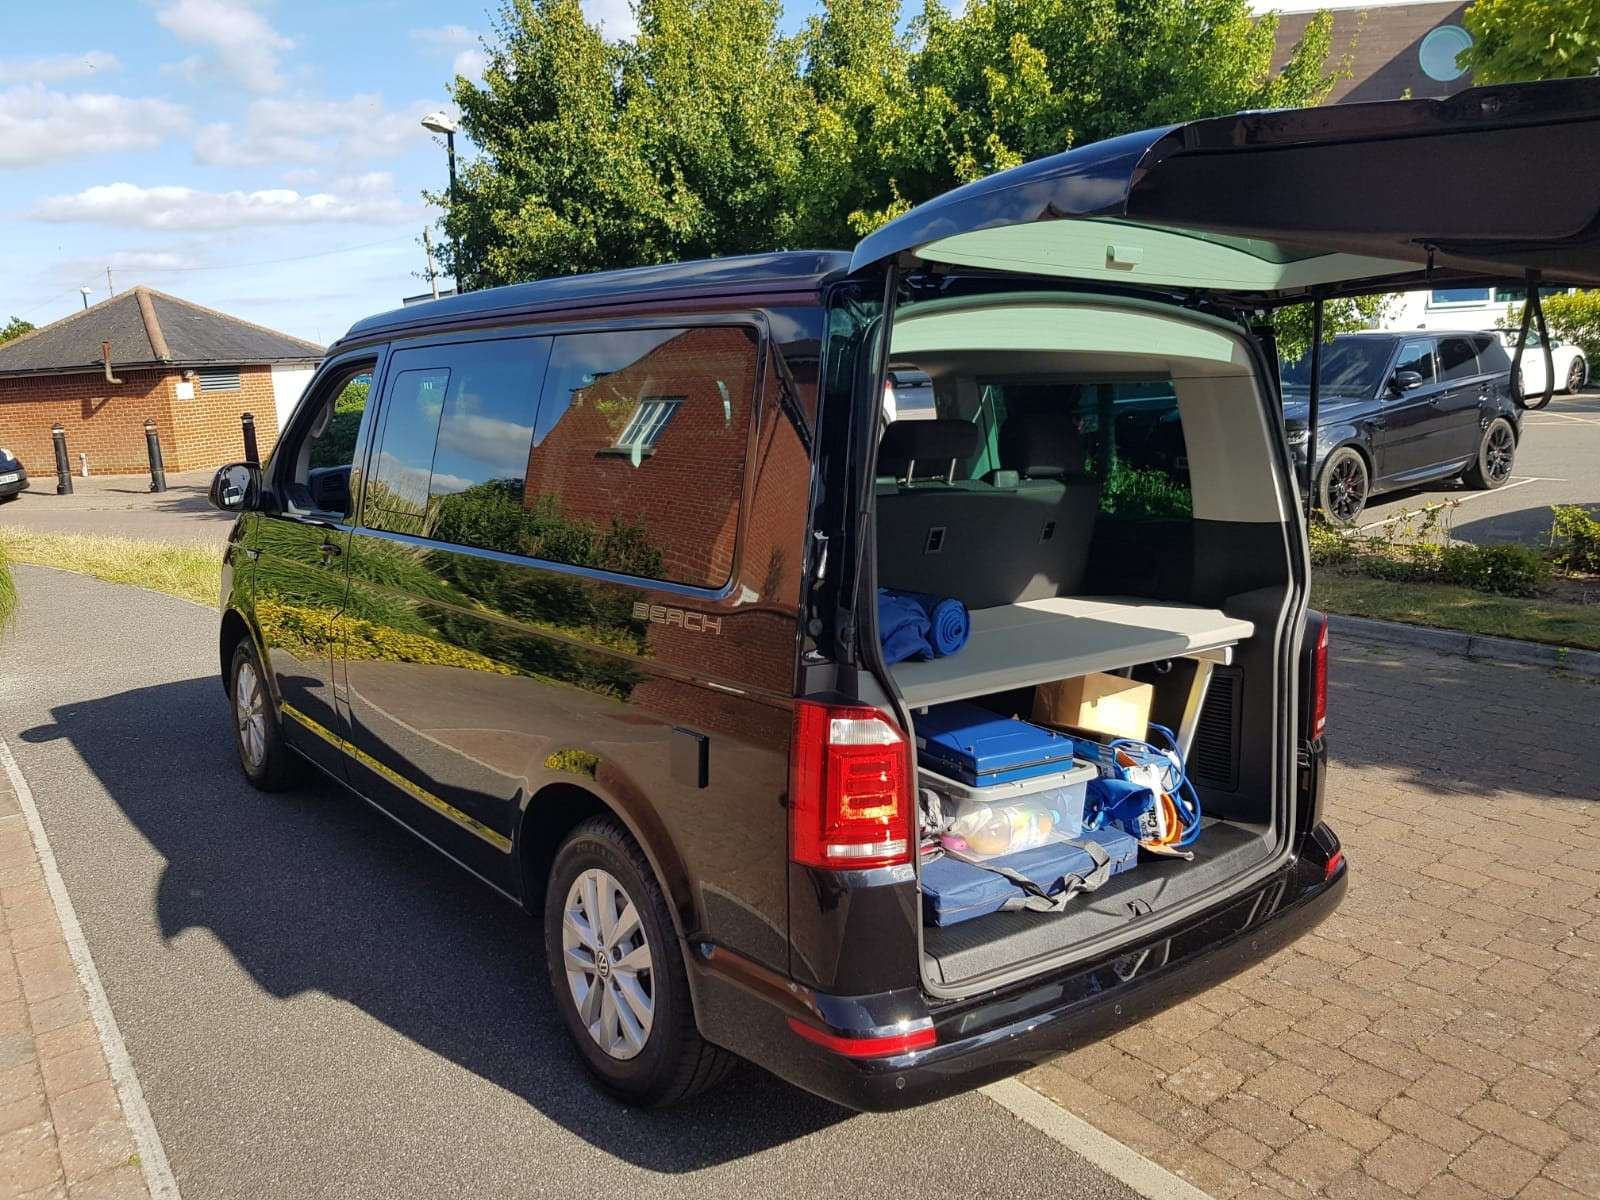 A VW T6 California Campervan called Rocky-Beach and for hire in dorset, Dorset